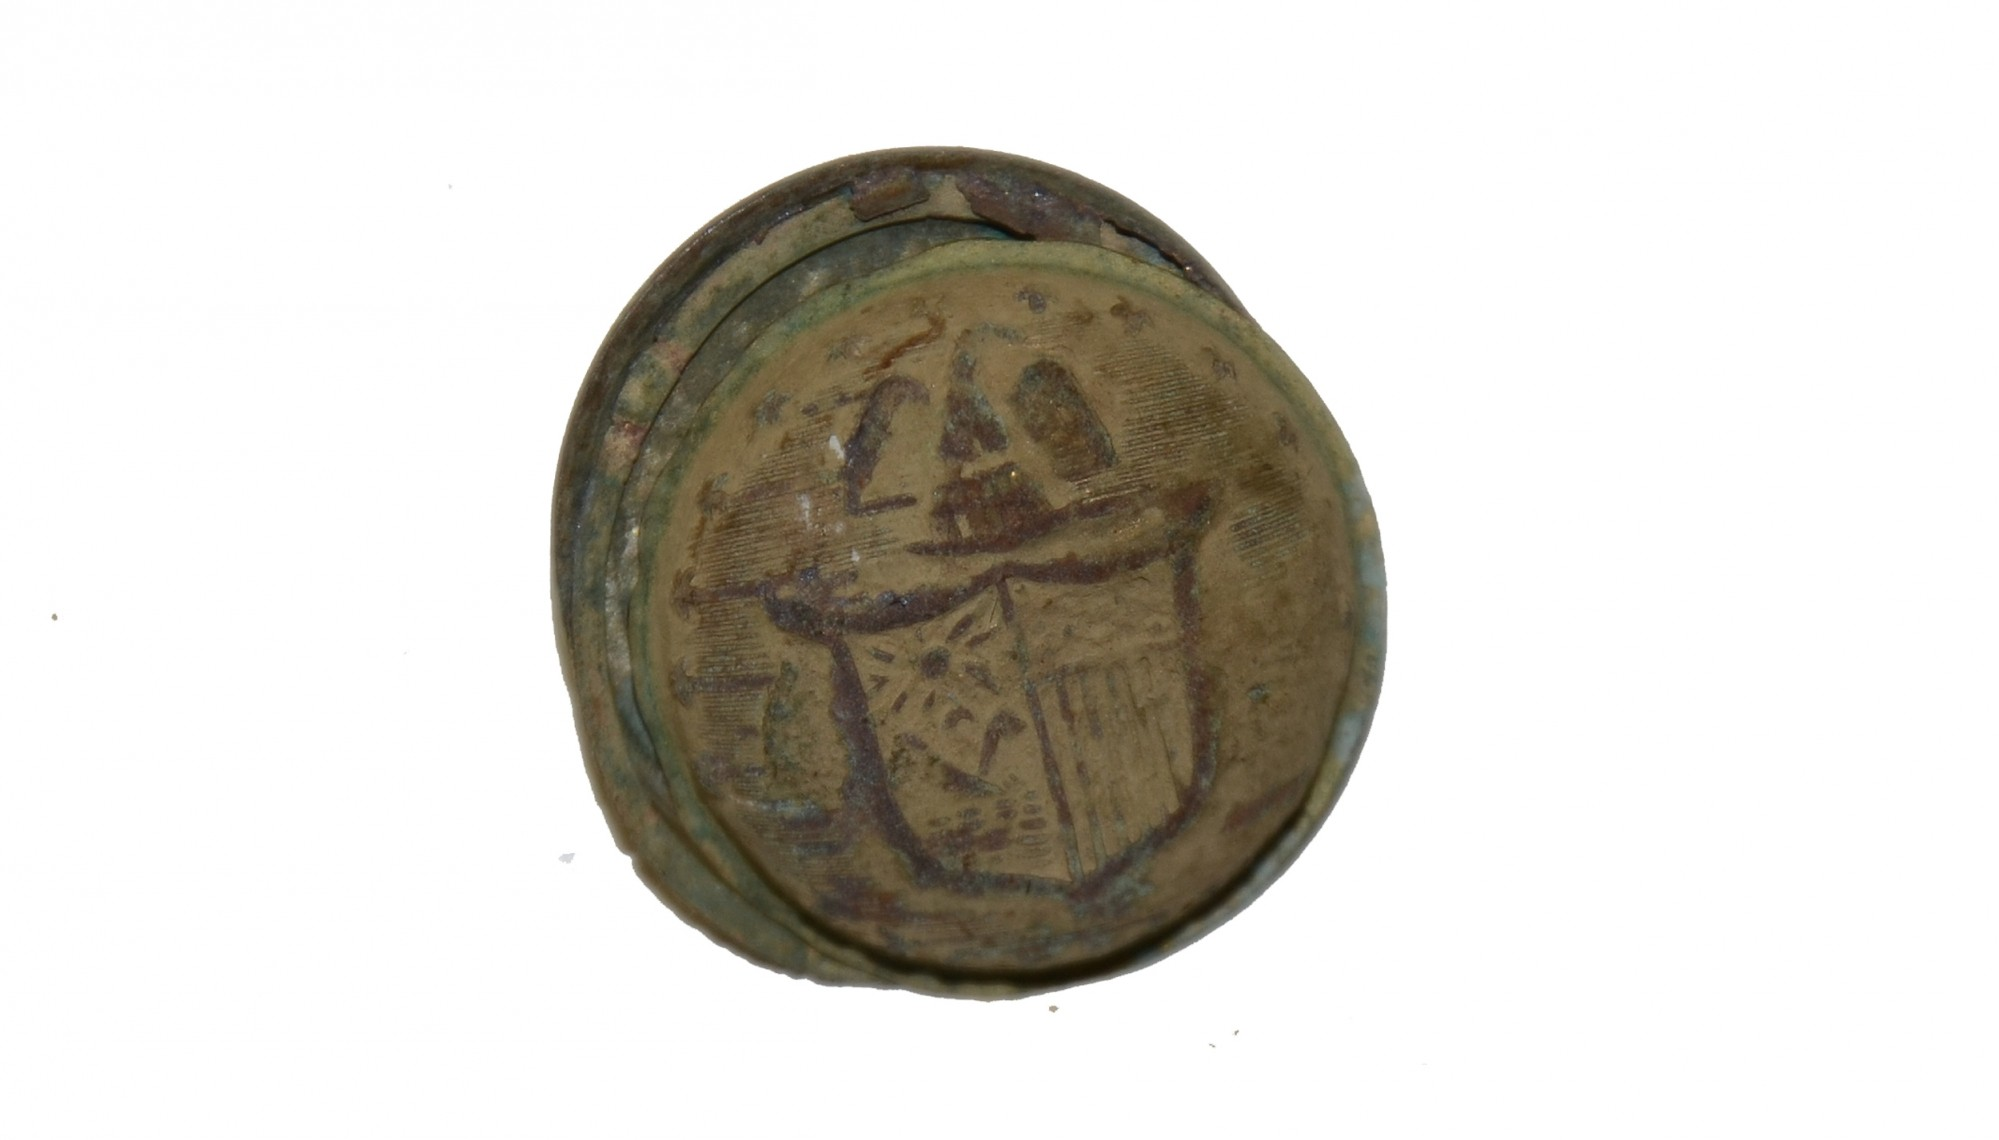 NEW YORK COAT BUTTON RECOVERED NEAR CULP'S HILL